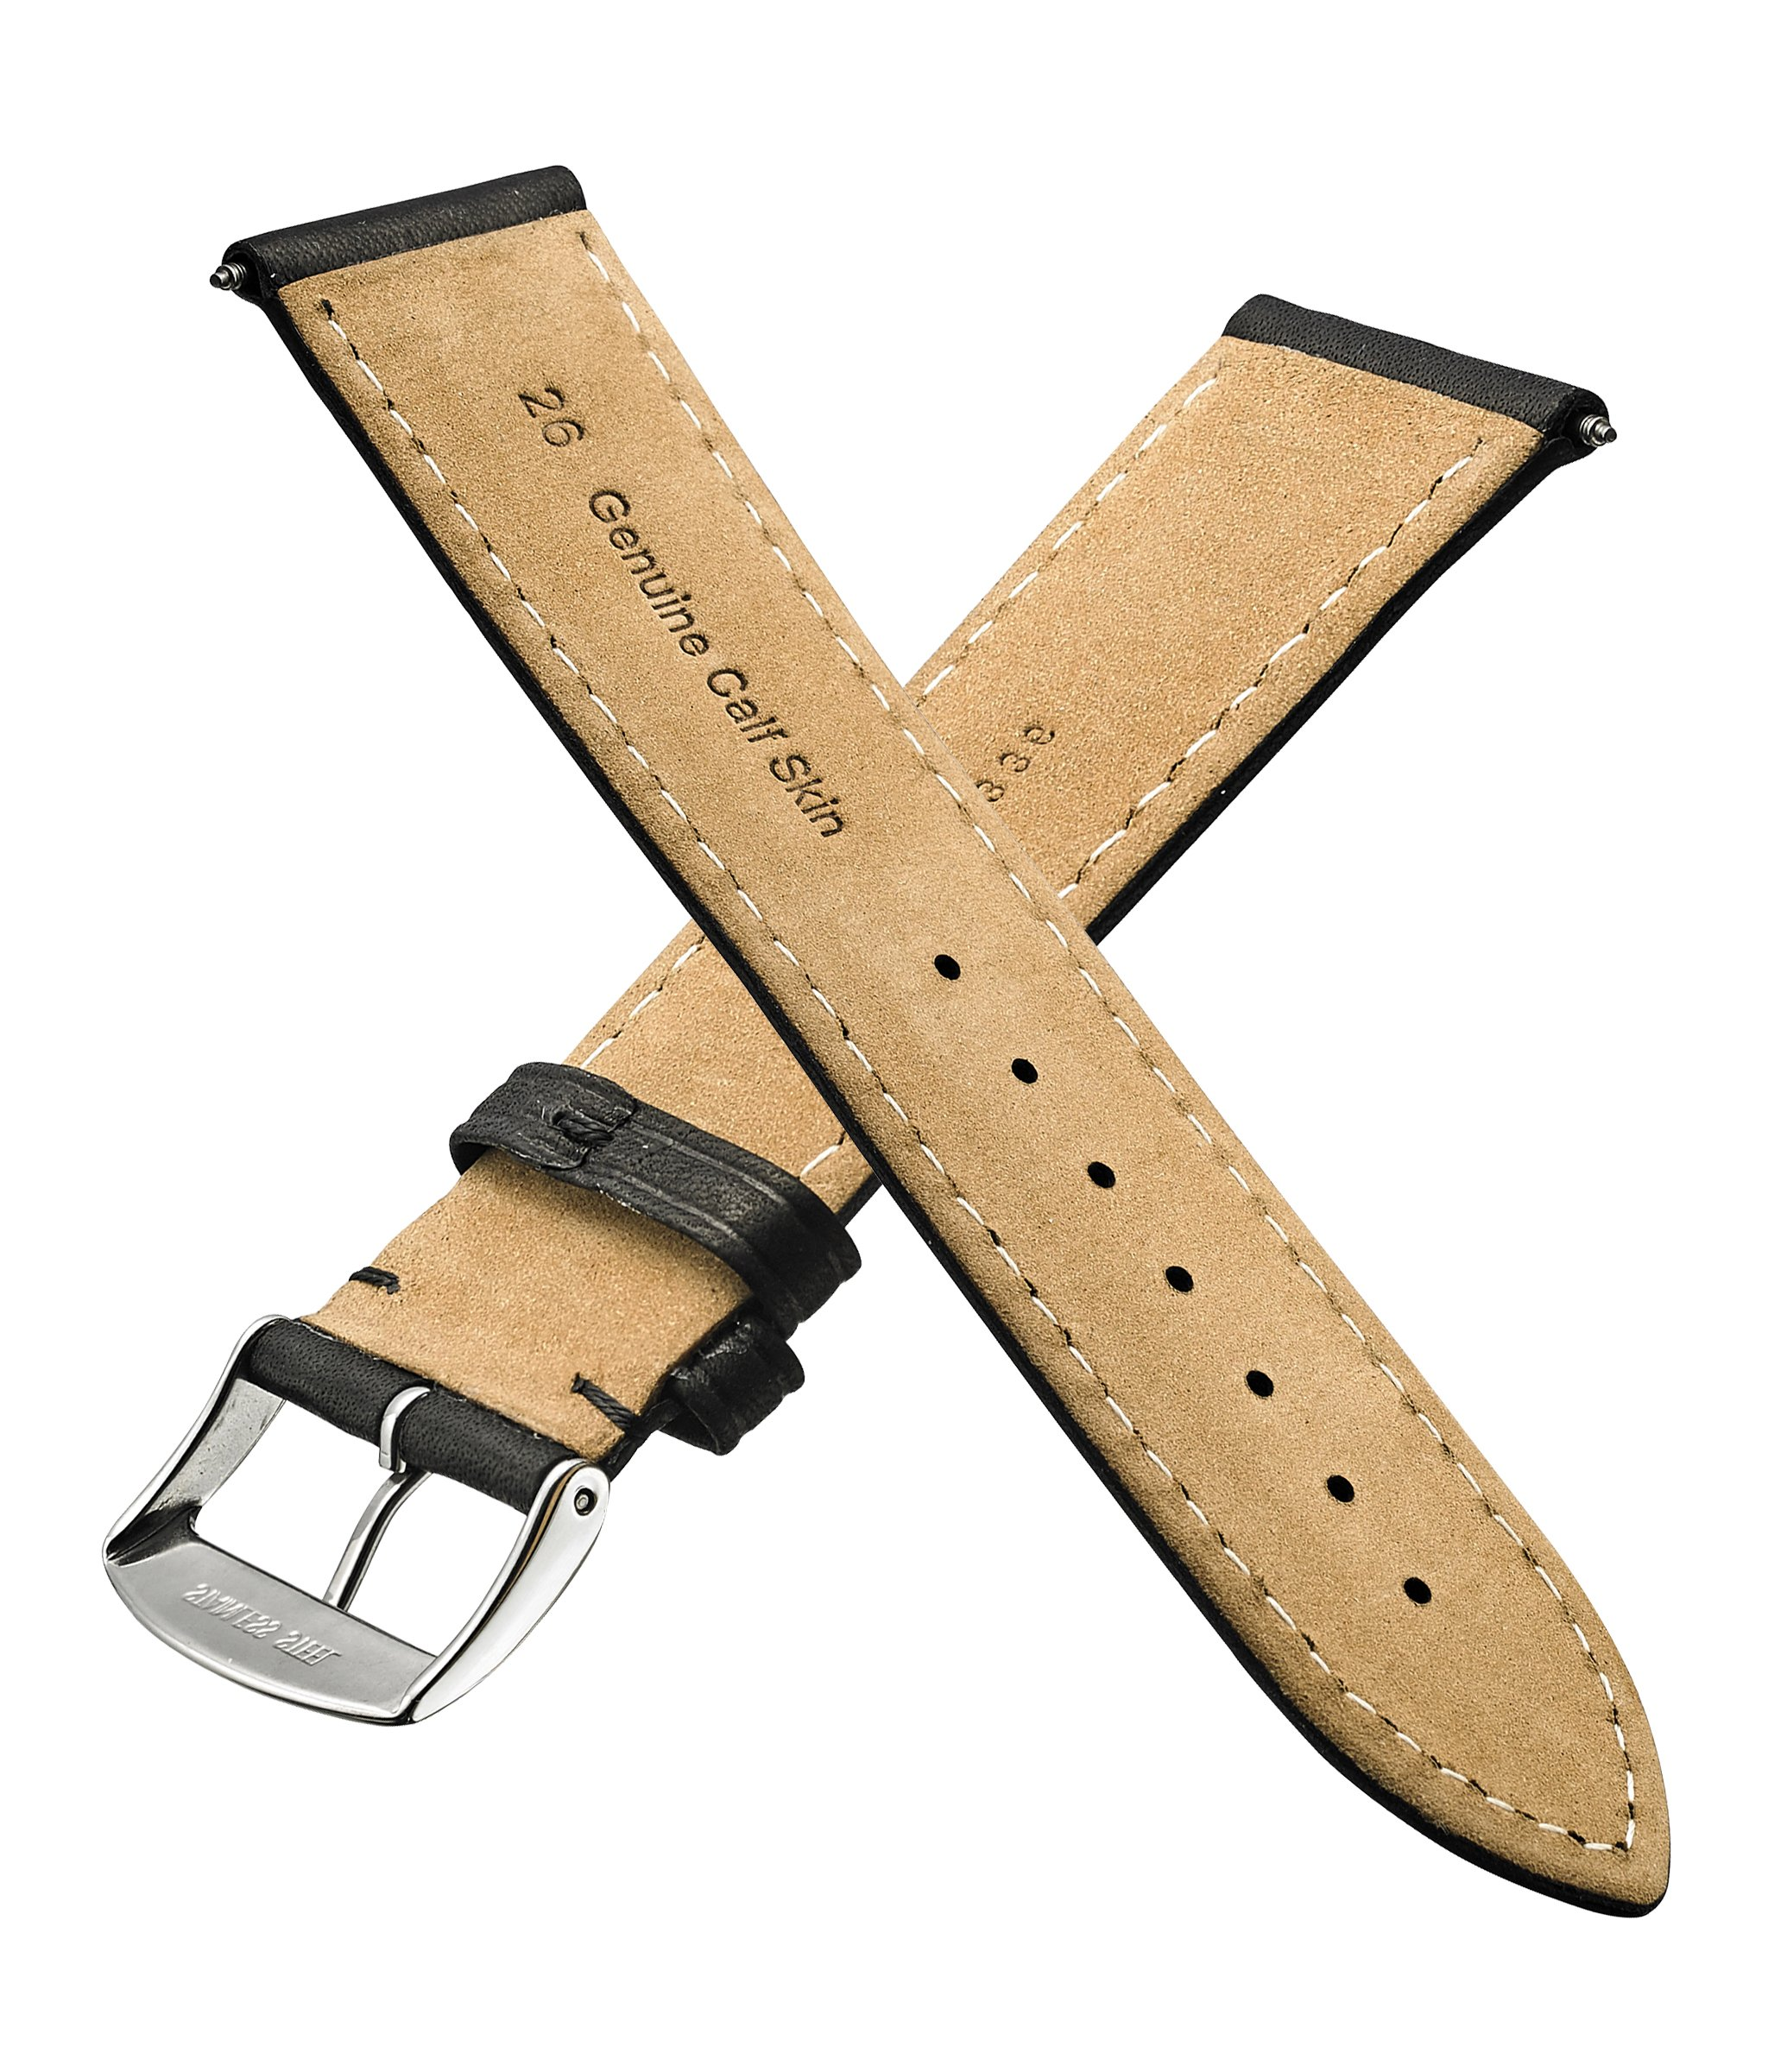 Genuine Leather Watch Band (fits Wrist Sizes 6-7 1/2 inch)- Black - 30mm by STUNNING SELECTION (Image #2)